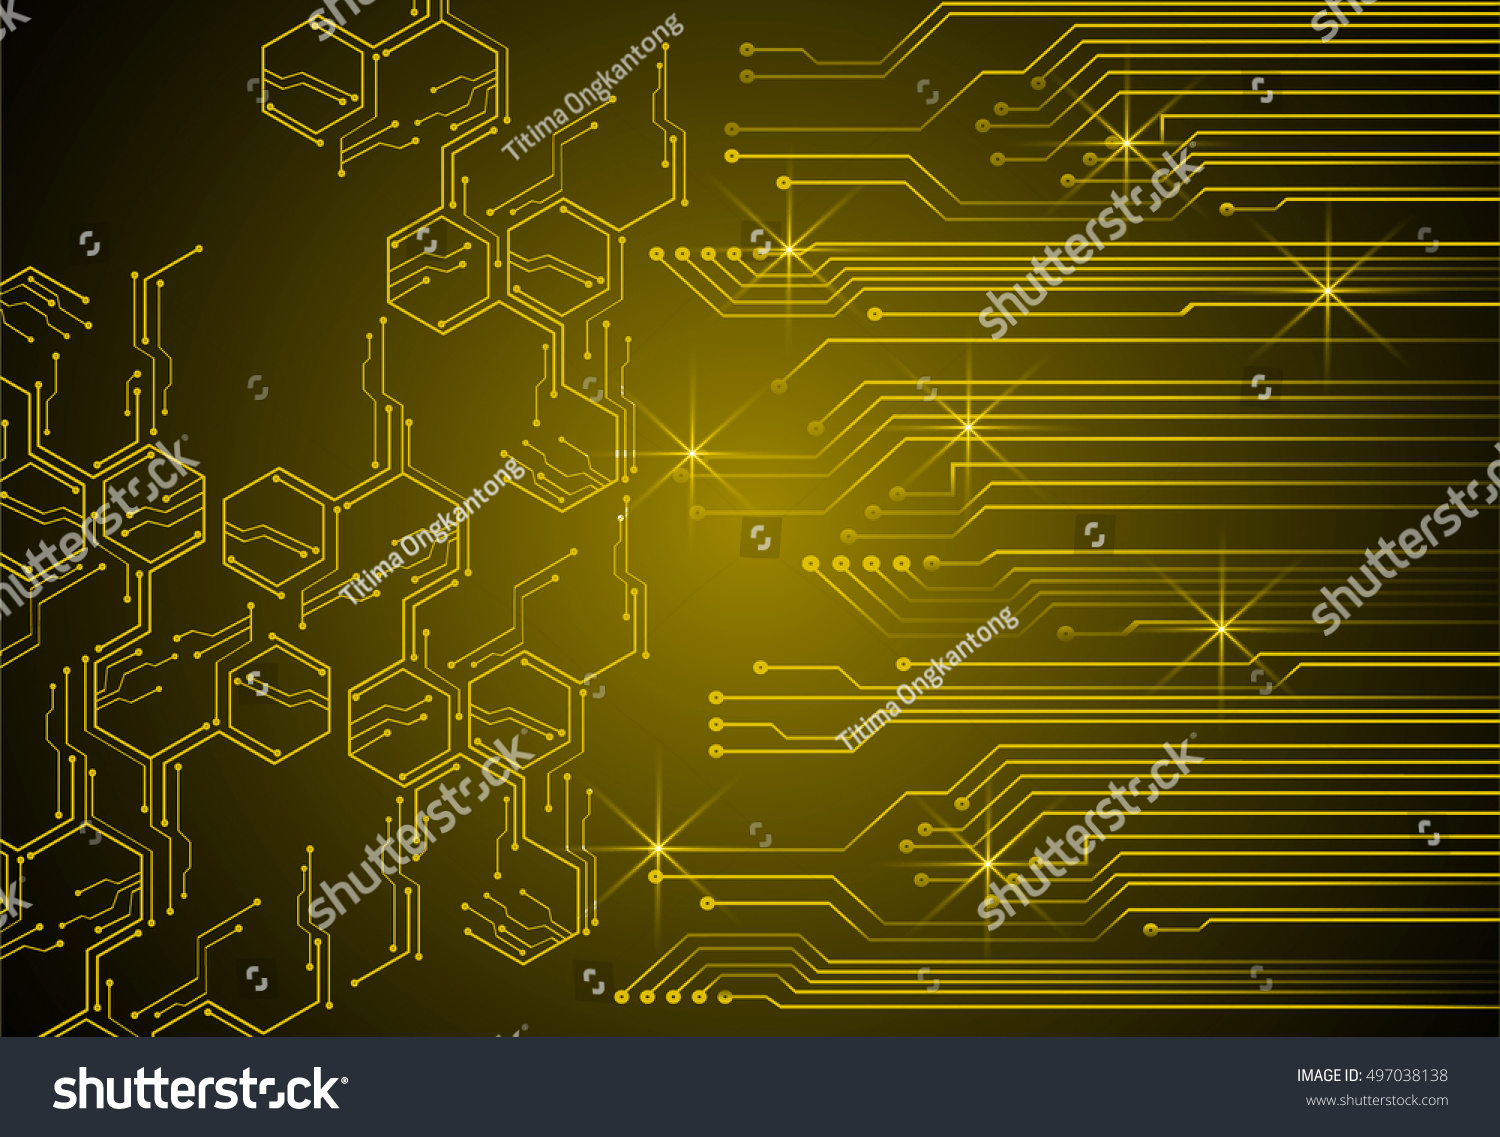 hight resolution of future technology yellow light cyber security concept background abstract hi speed digital data internet